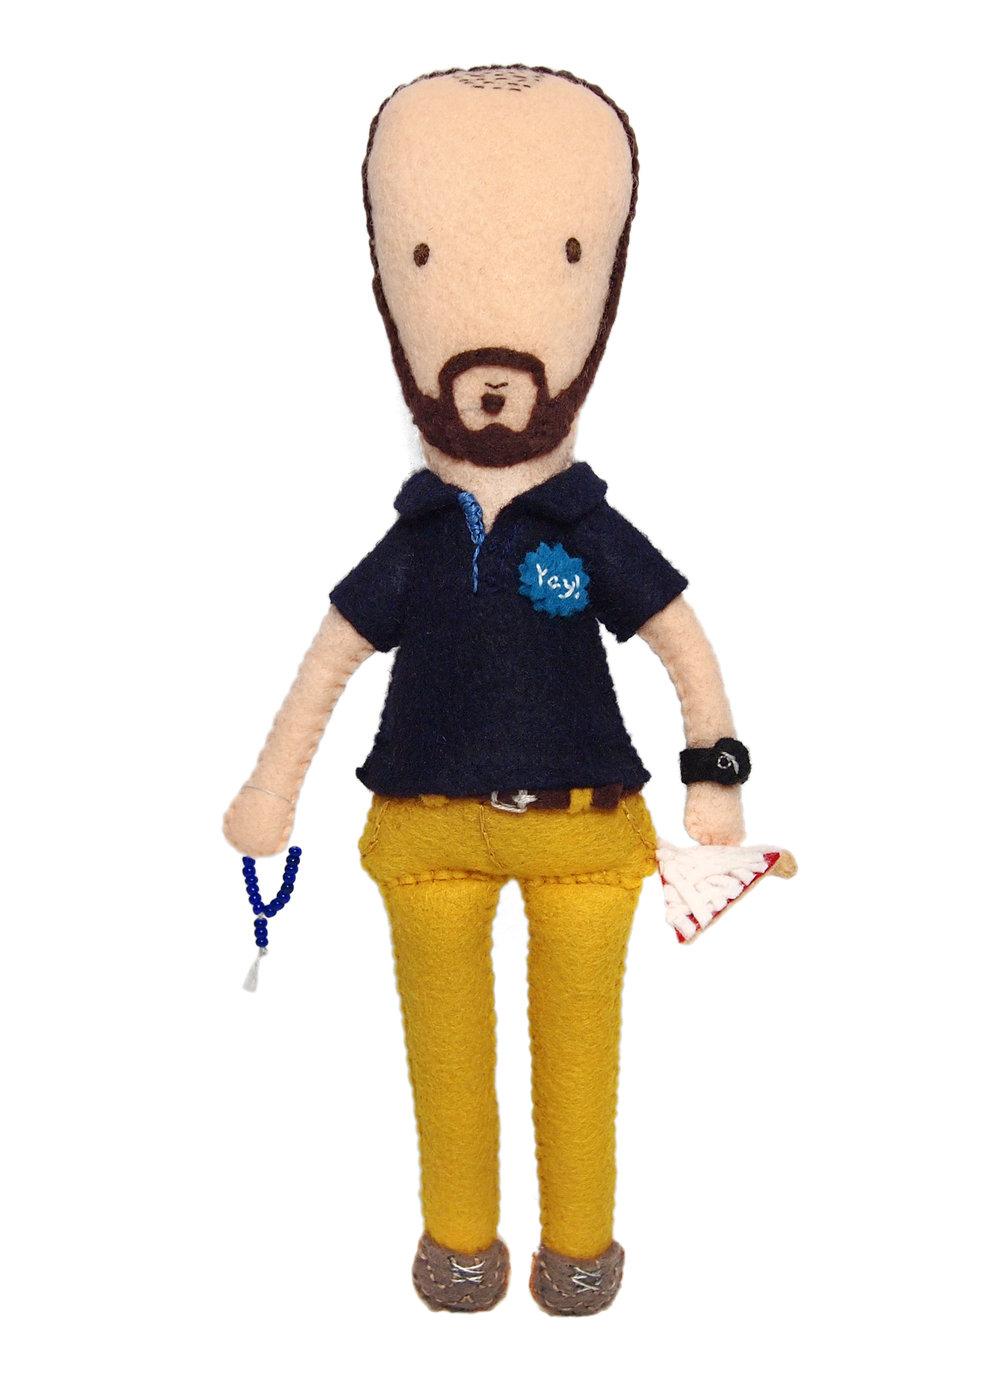 MOO Inc. employee appreciation personalized doll portrait